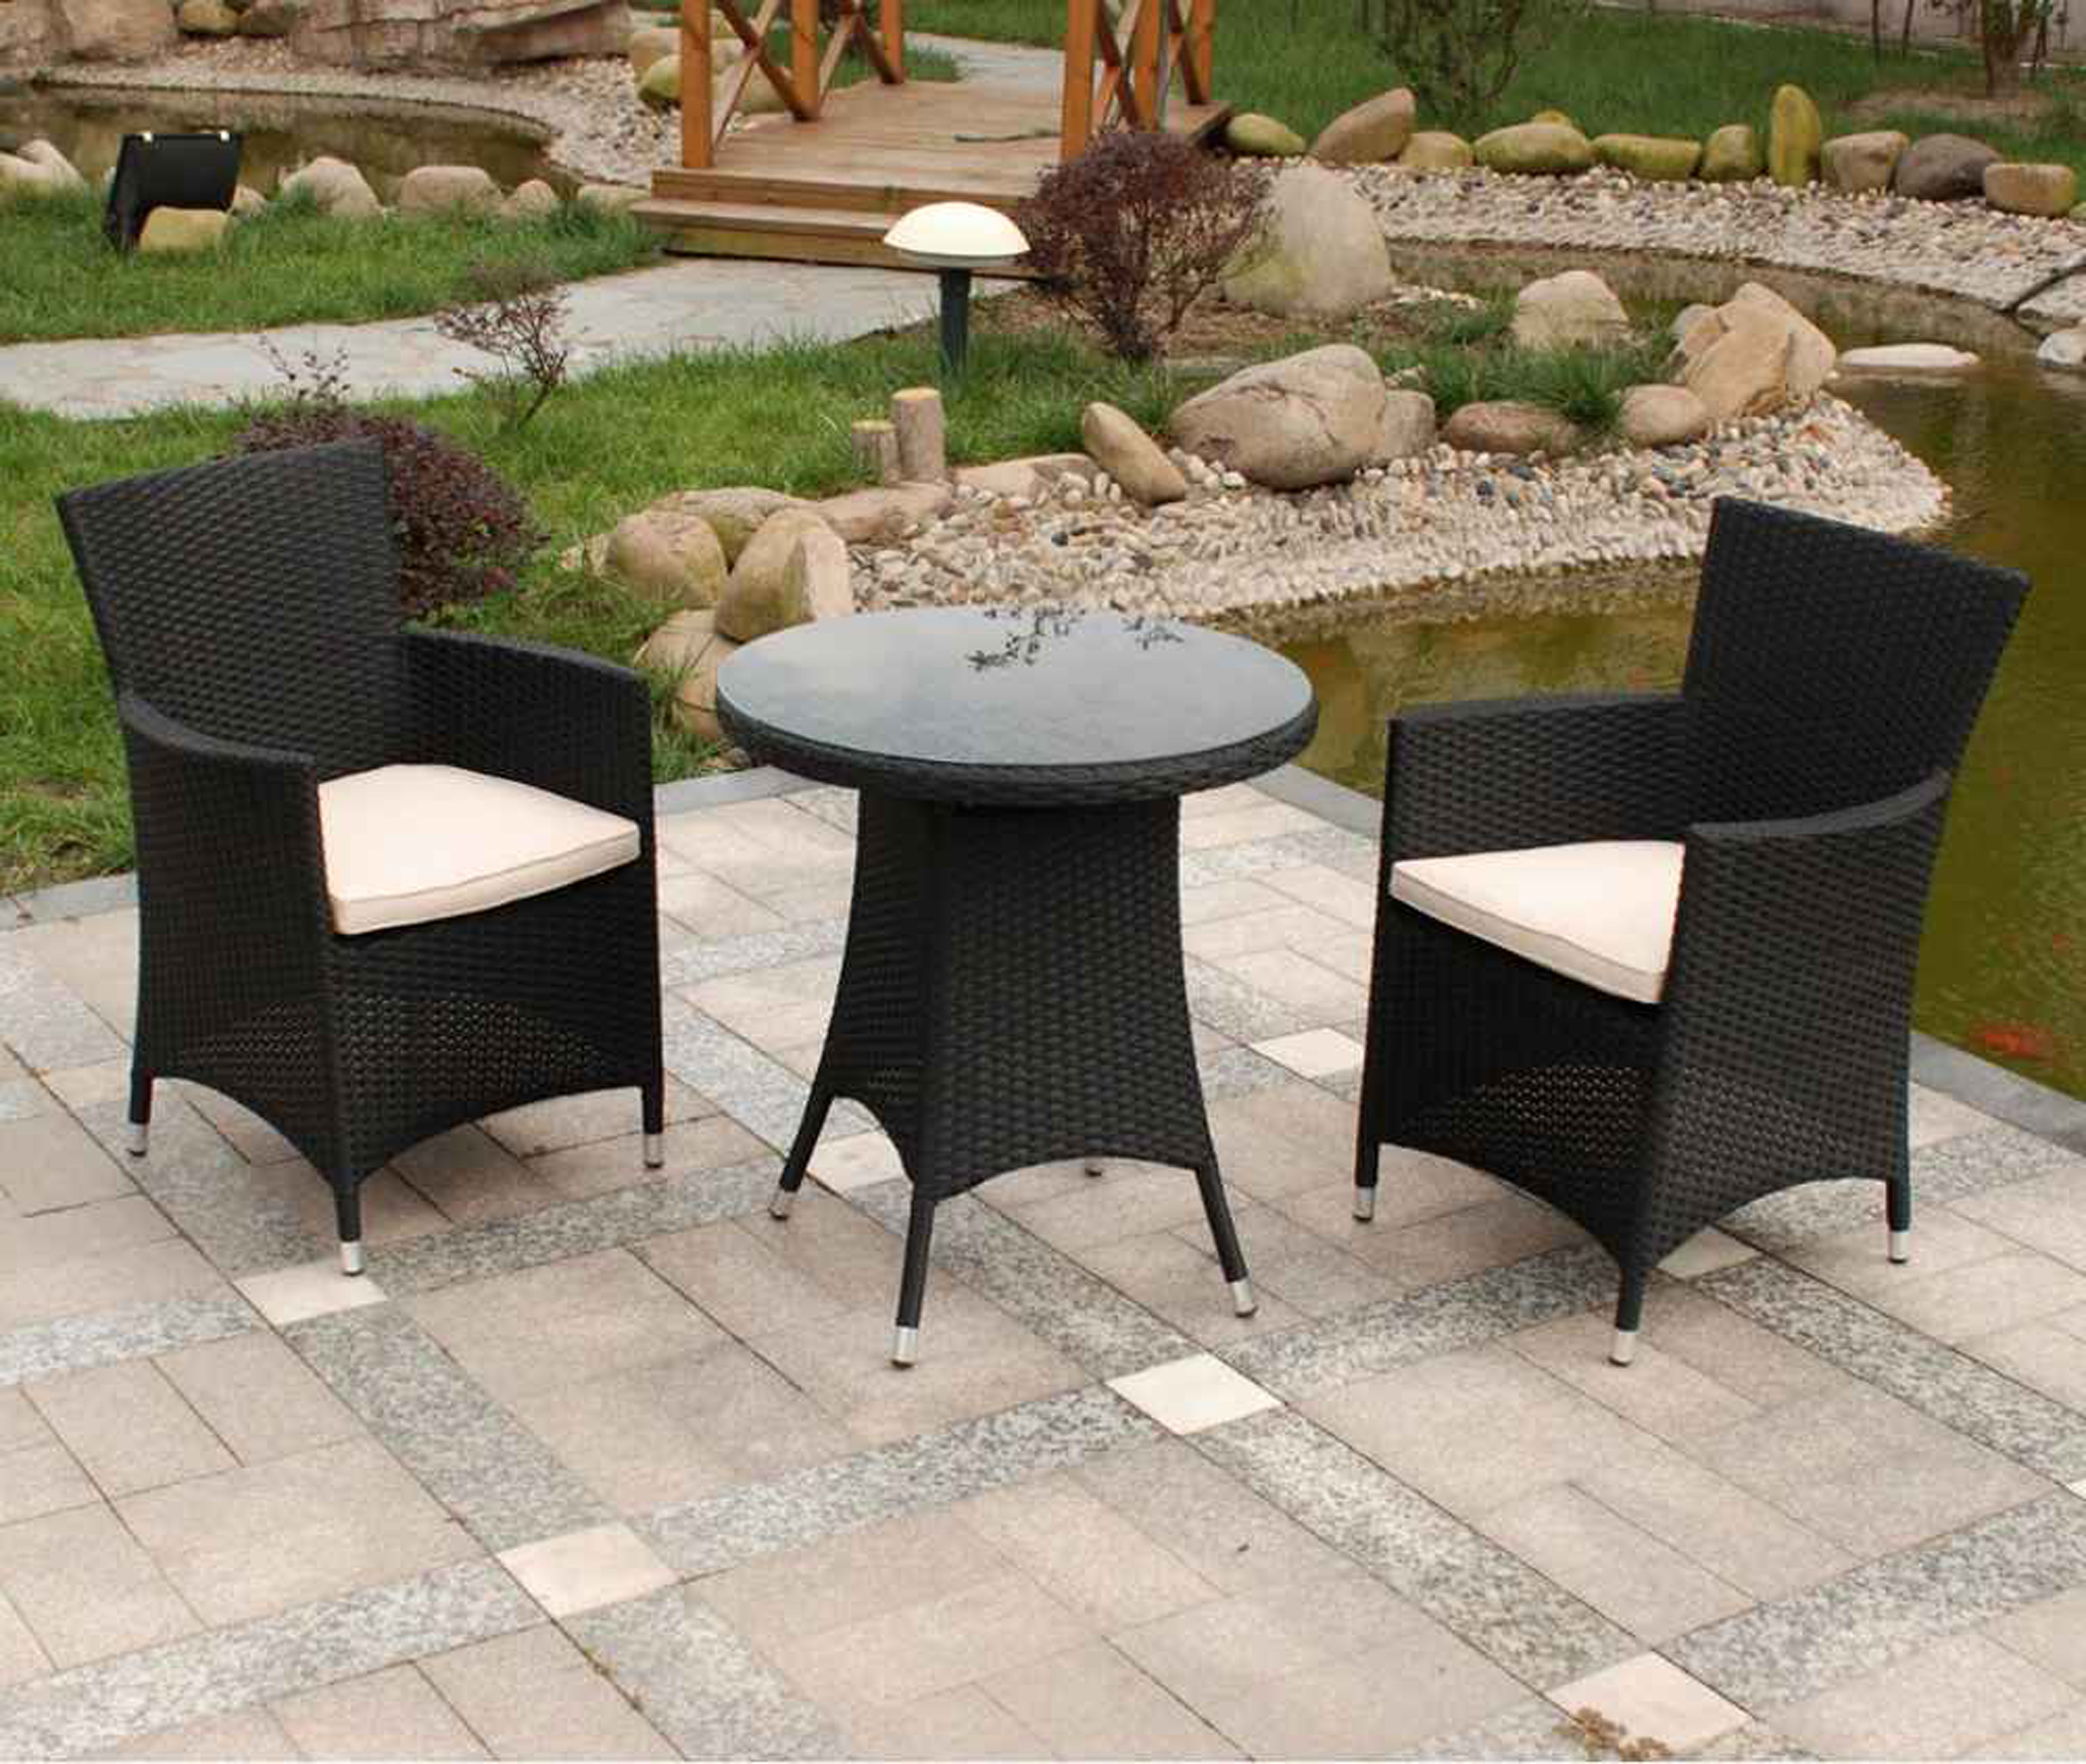 midcentury pebbleart transparent wood global chrome inches outdoor side table plans free form chairs sectional rug counter height dining room leg feet round pedestal accent black